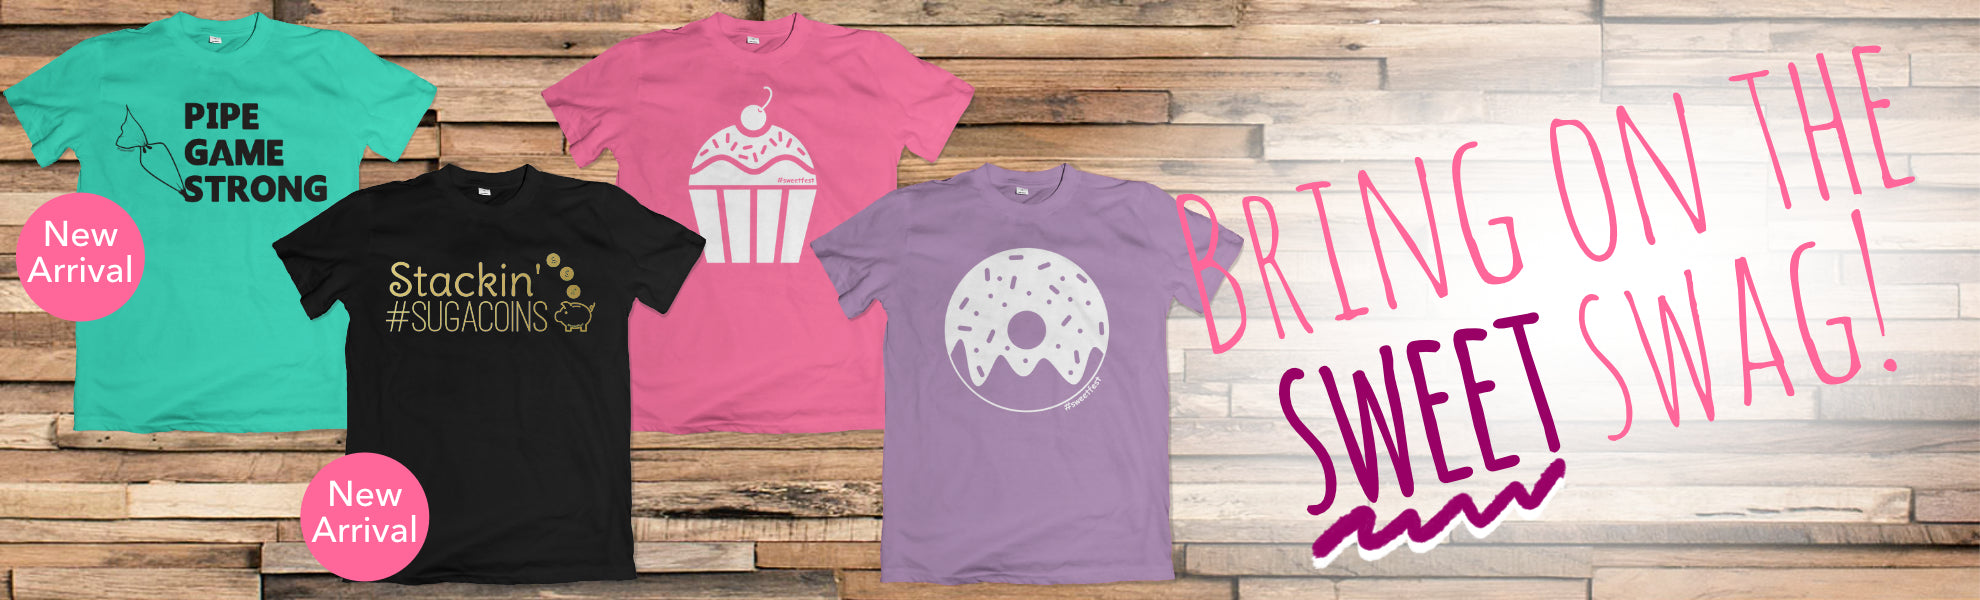 T-shirts and gifts for bakers and sweet treat makers designed by Sweet Fest.